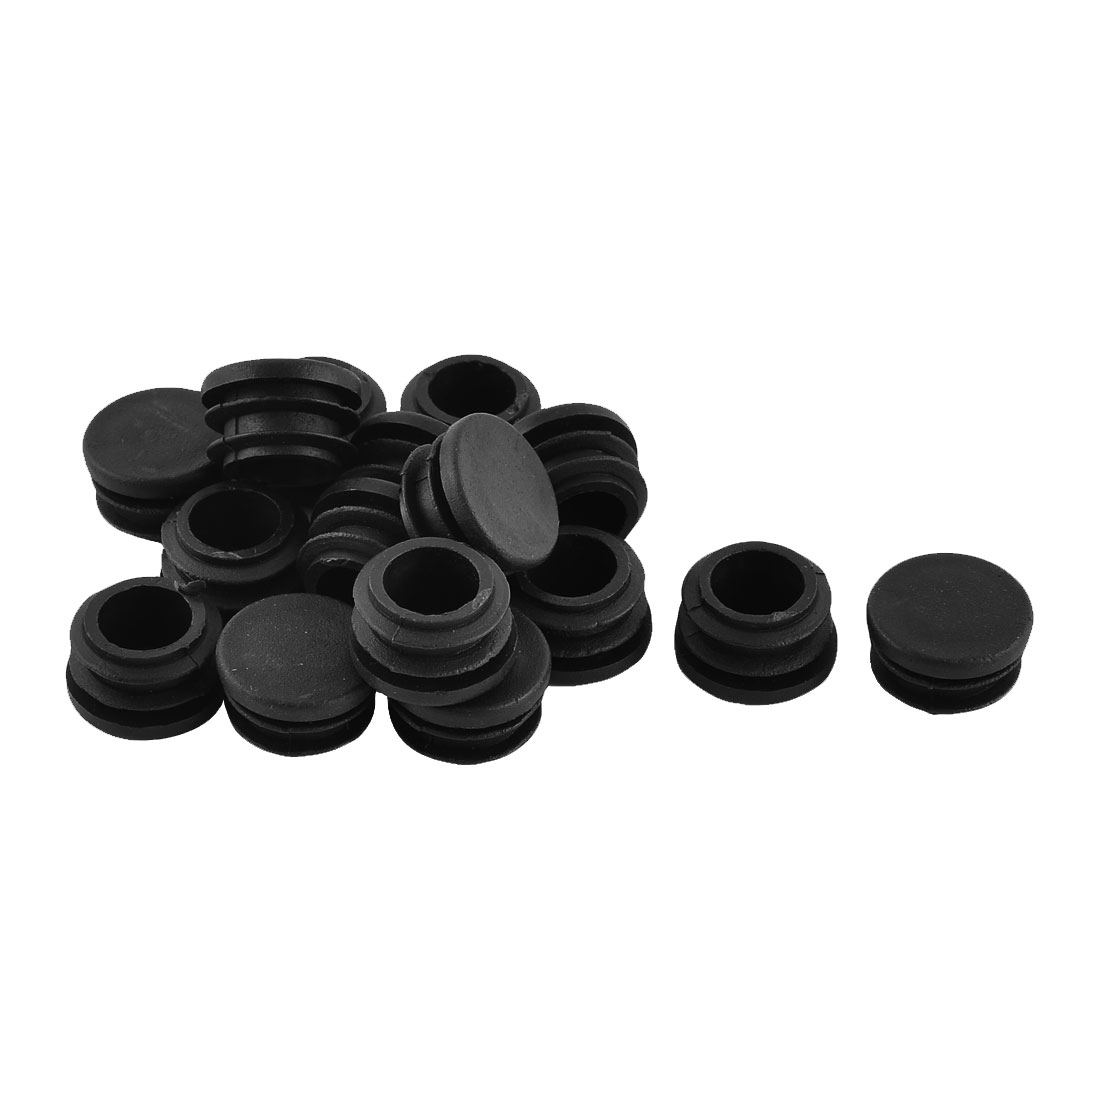 22mm Dia Plastic Furniture Table Chair Round Tube Insert Cap Cover Black 16pcs